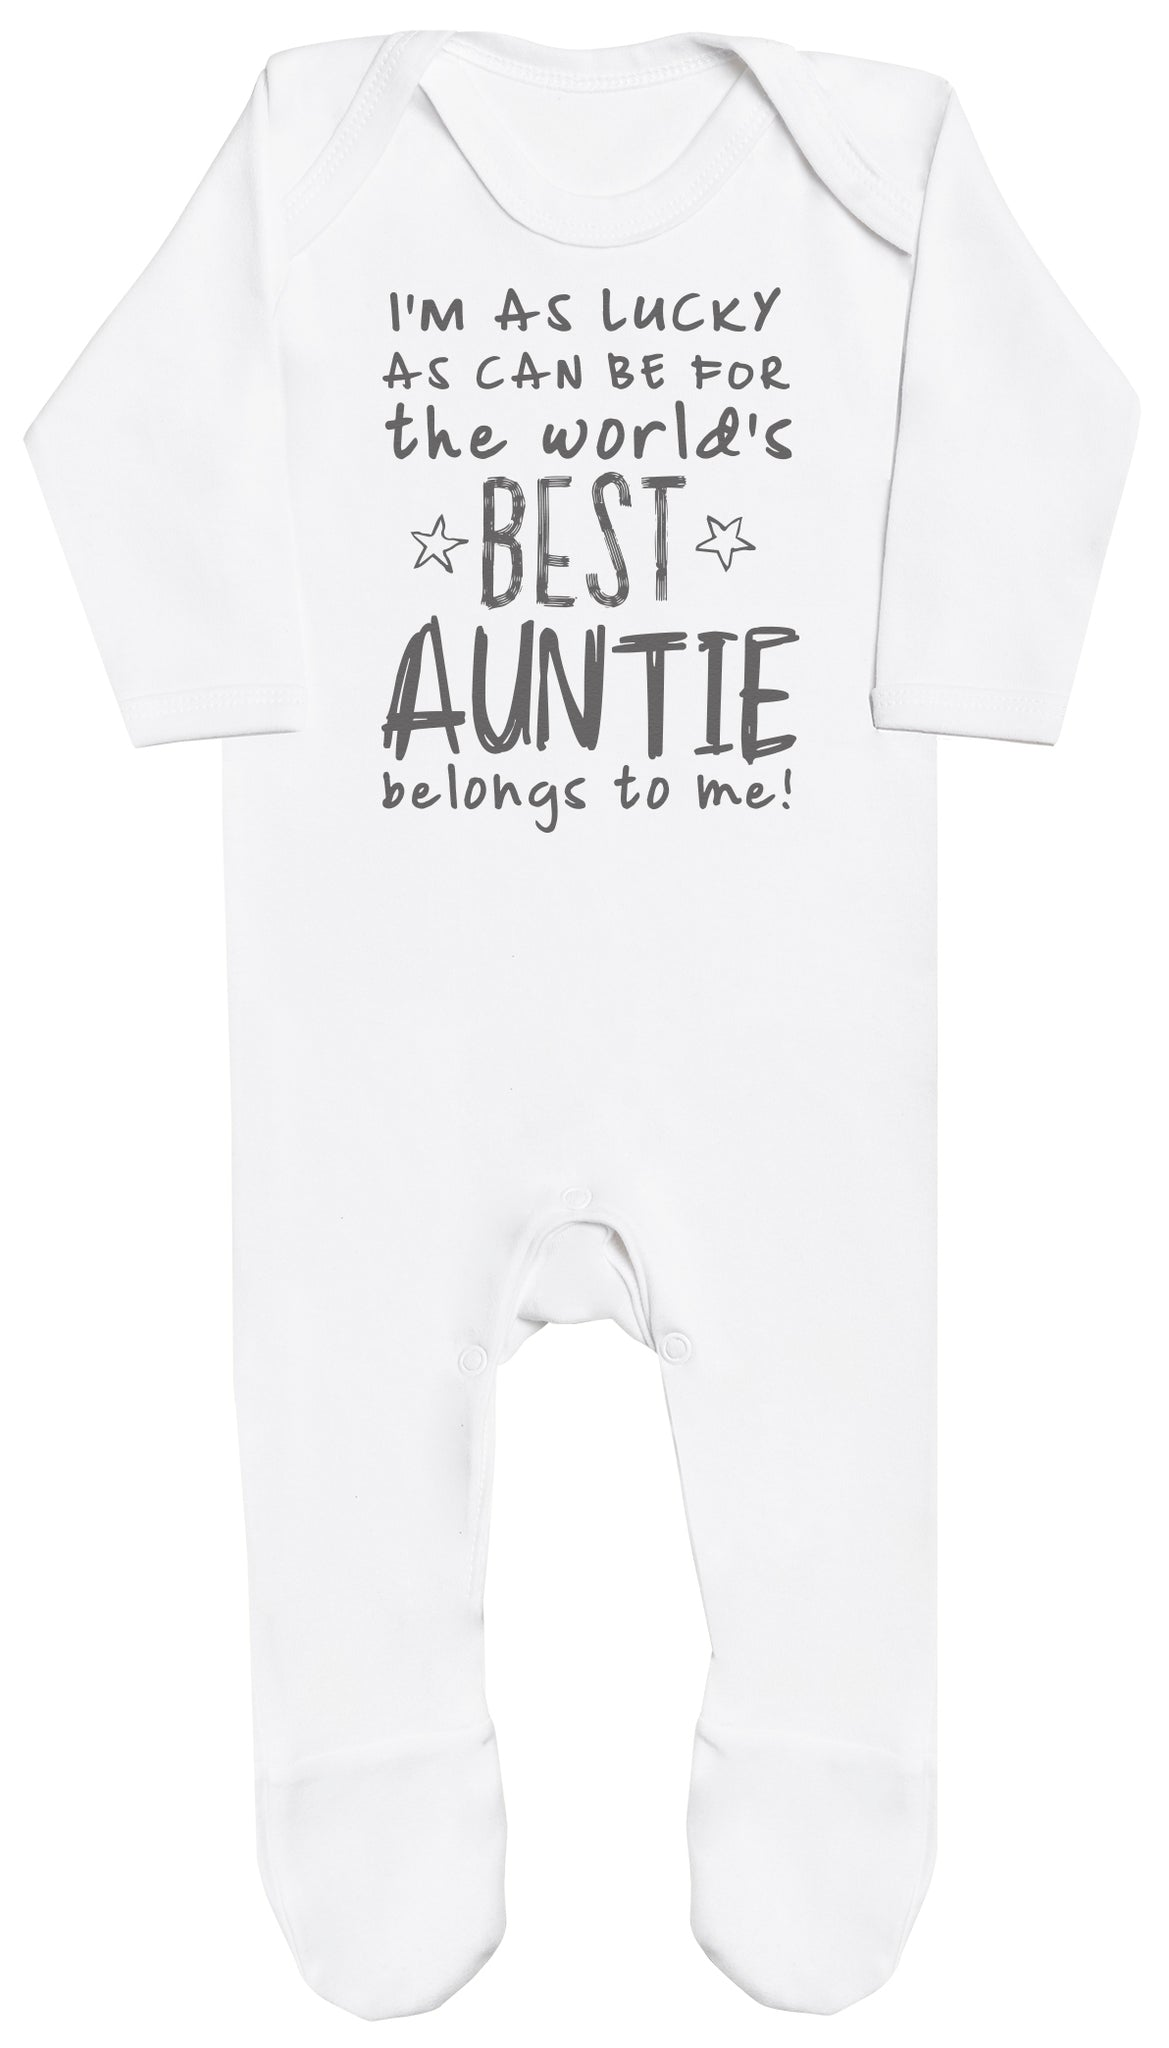 I'm As Lucky As Can Be Best Auntie belongs to me! Baby Romper